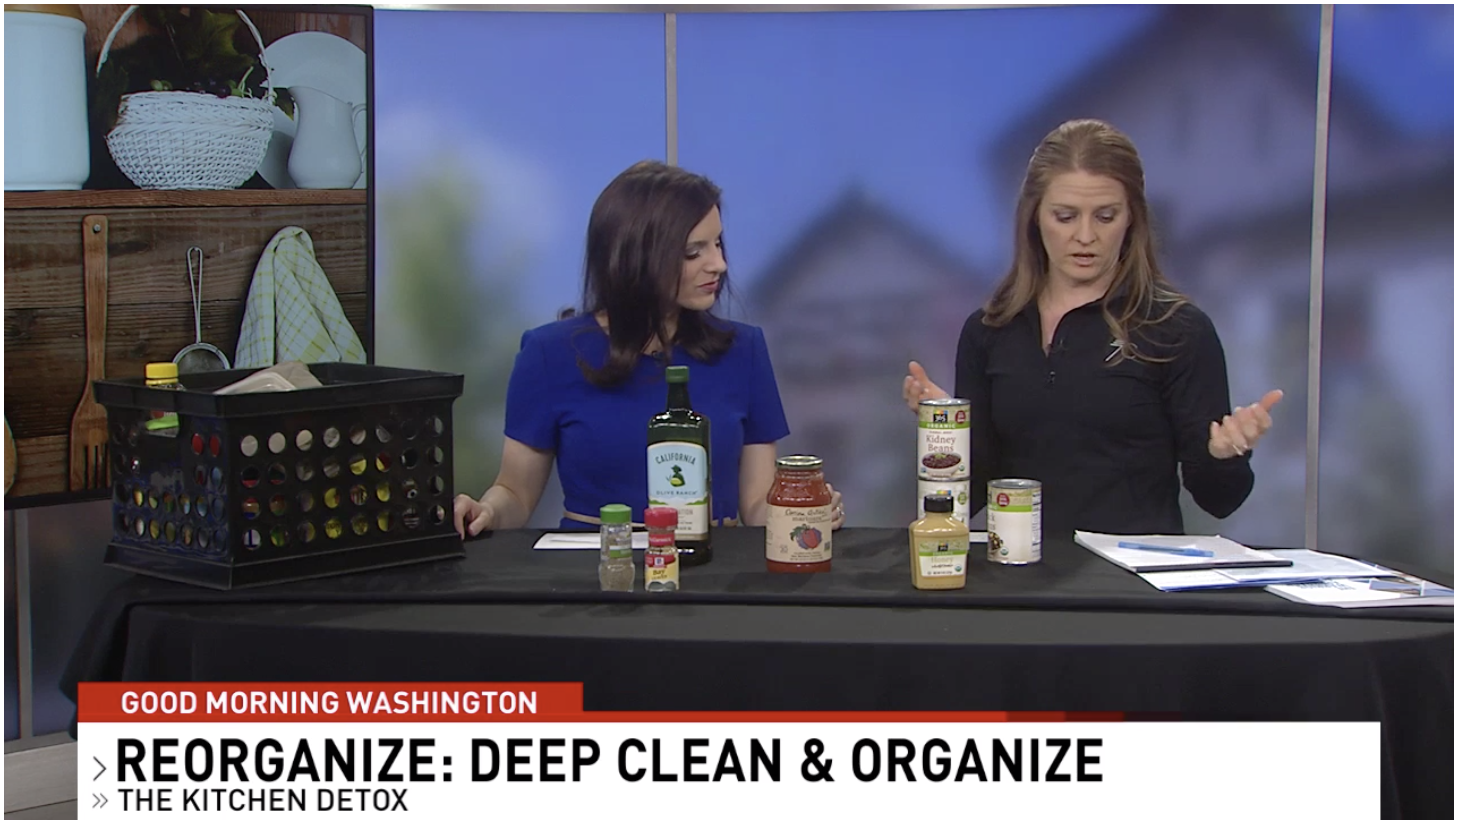 Image of Jen on Good Morning Washington